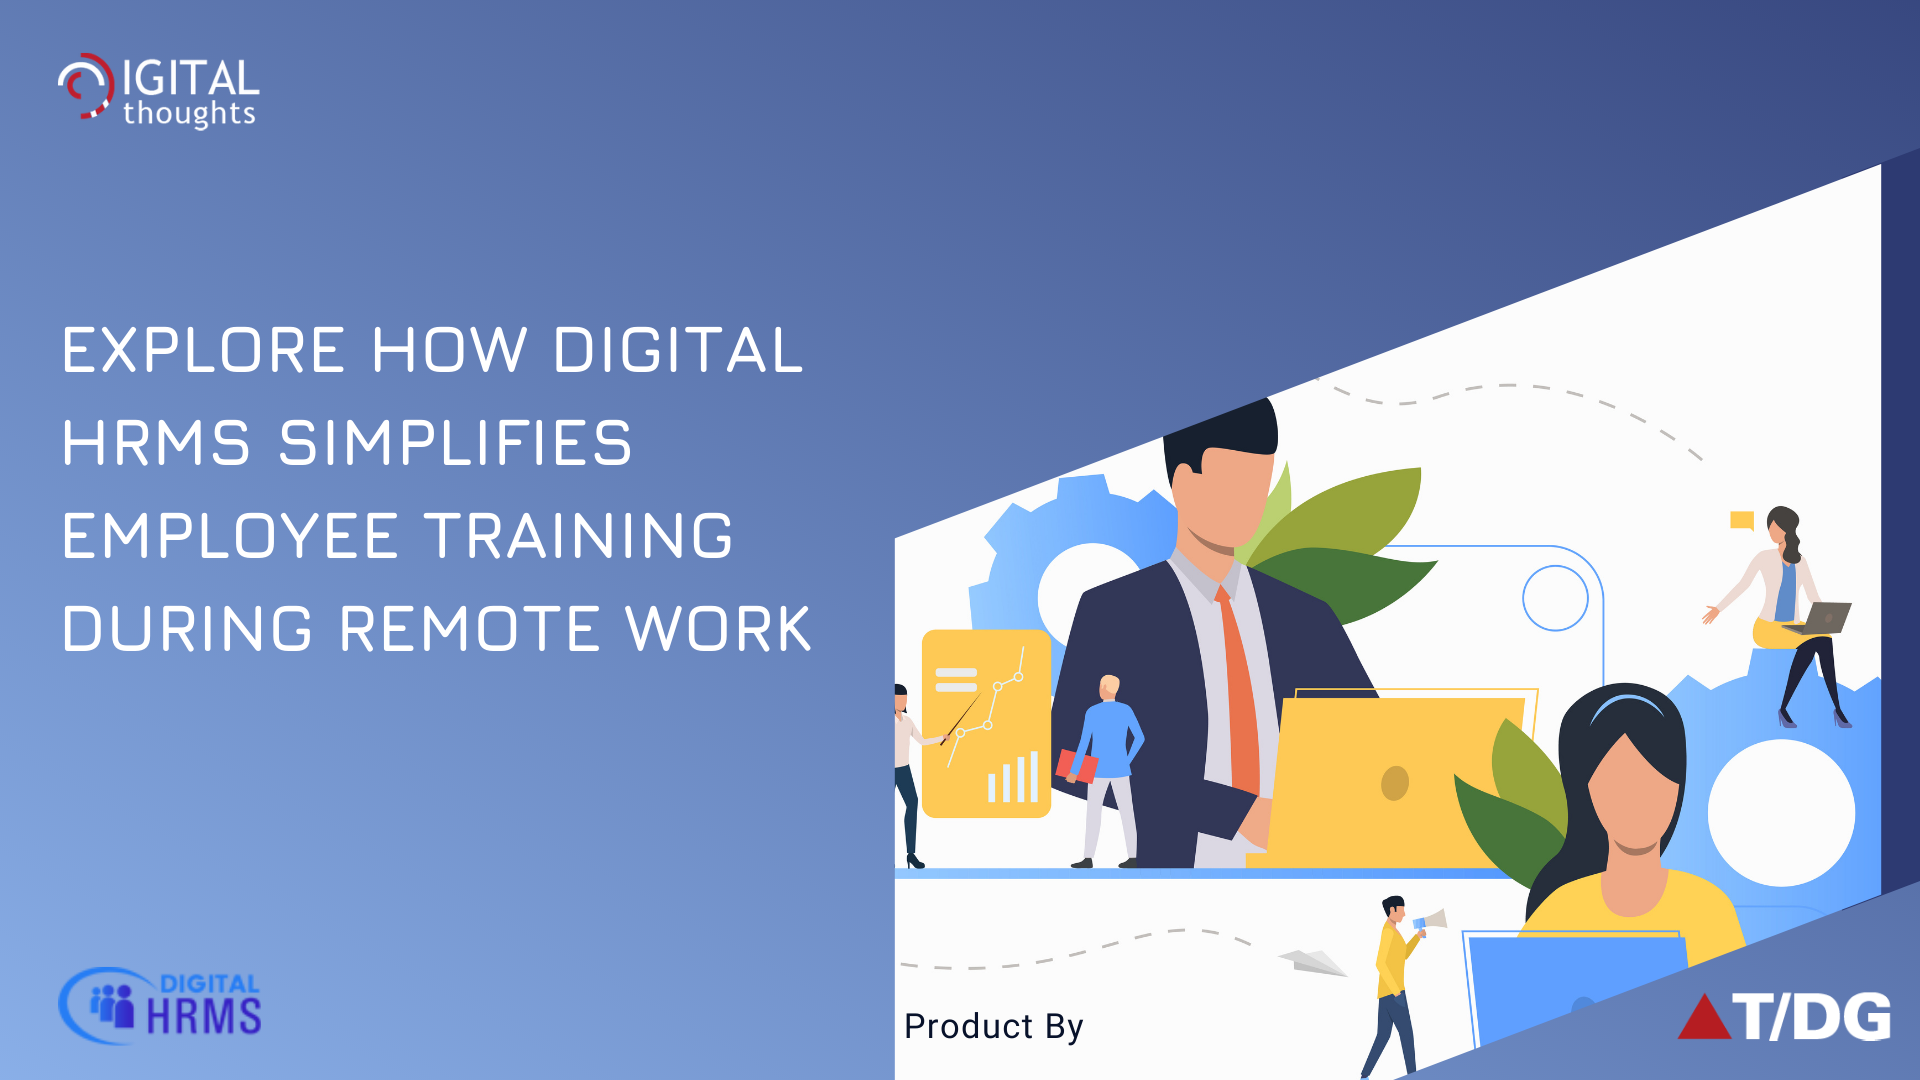 Employee Training During Remote Work with Digital HRMS